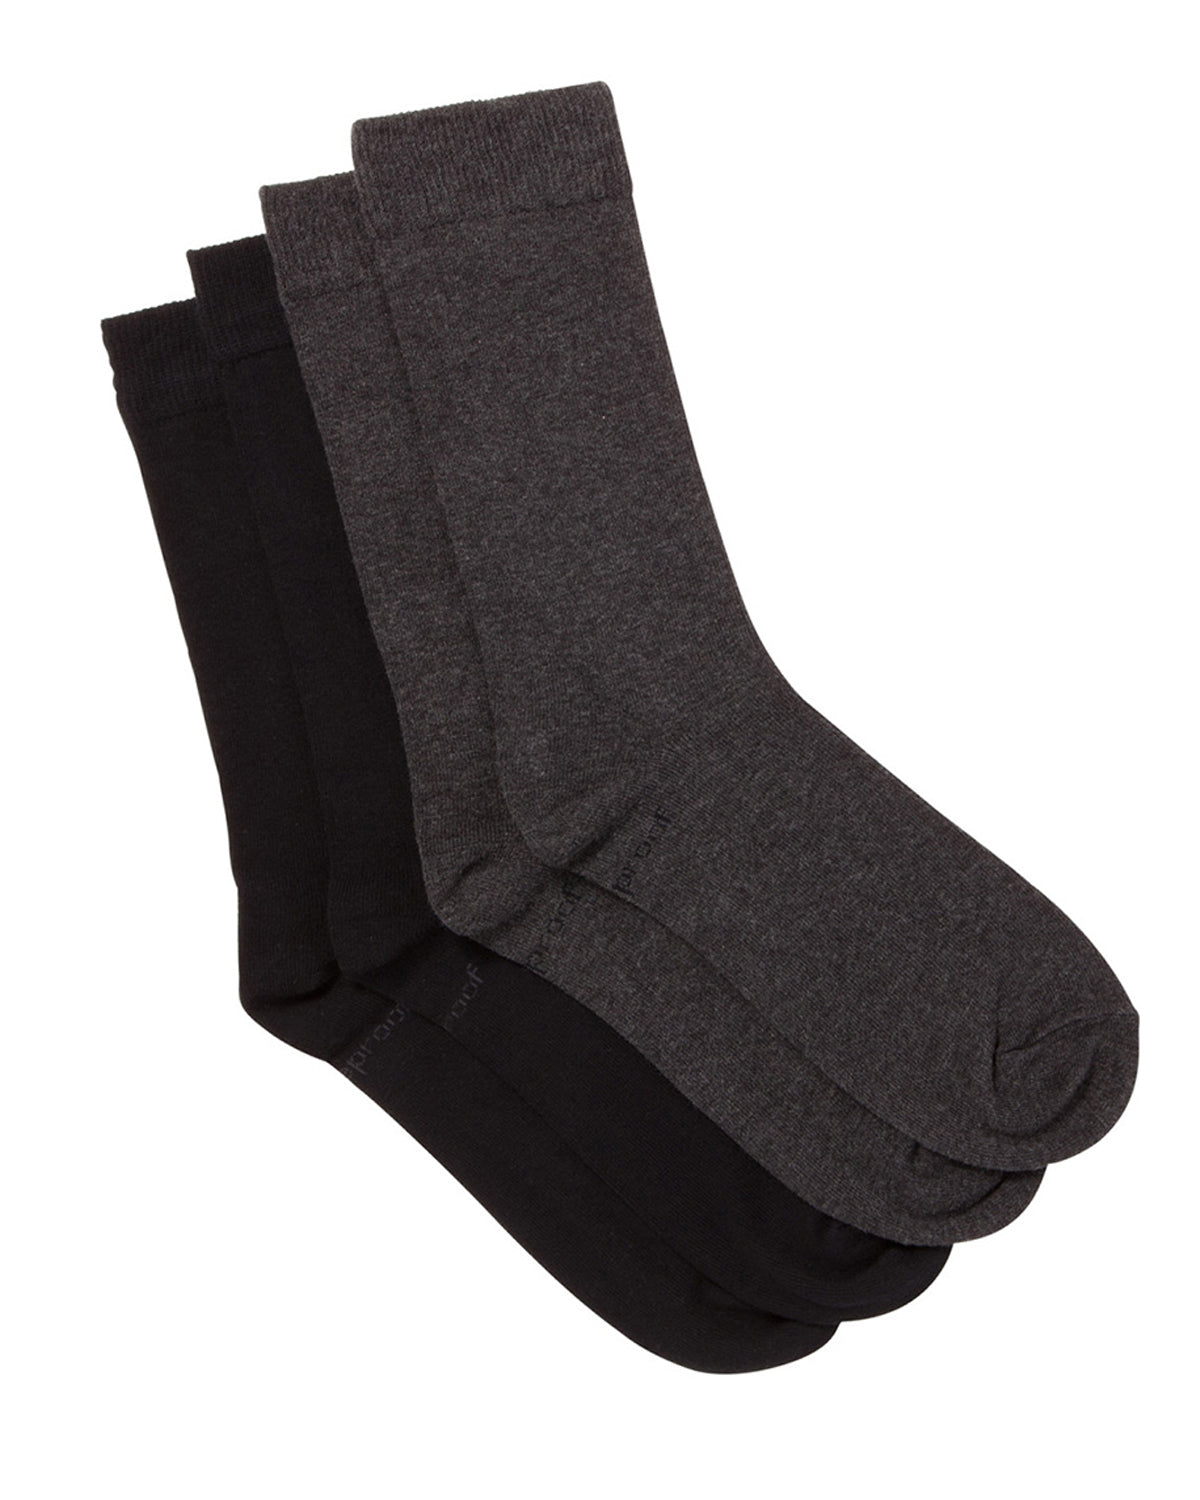 Holeproof Hereos Everyday Men's Business Socks (4 pack)